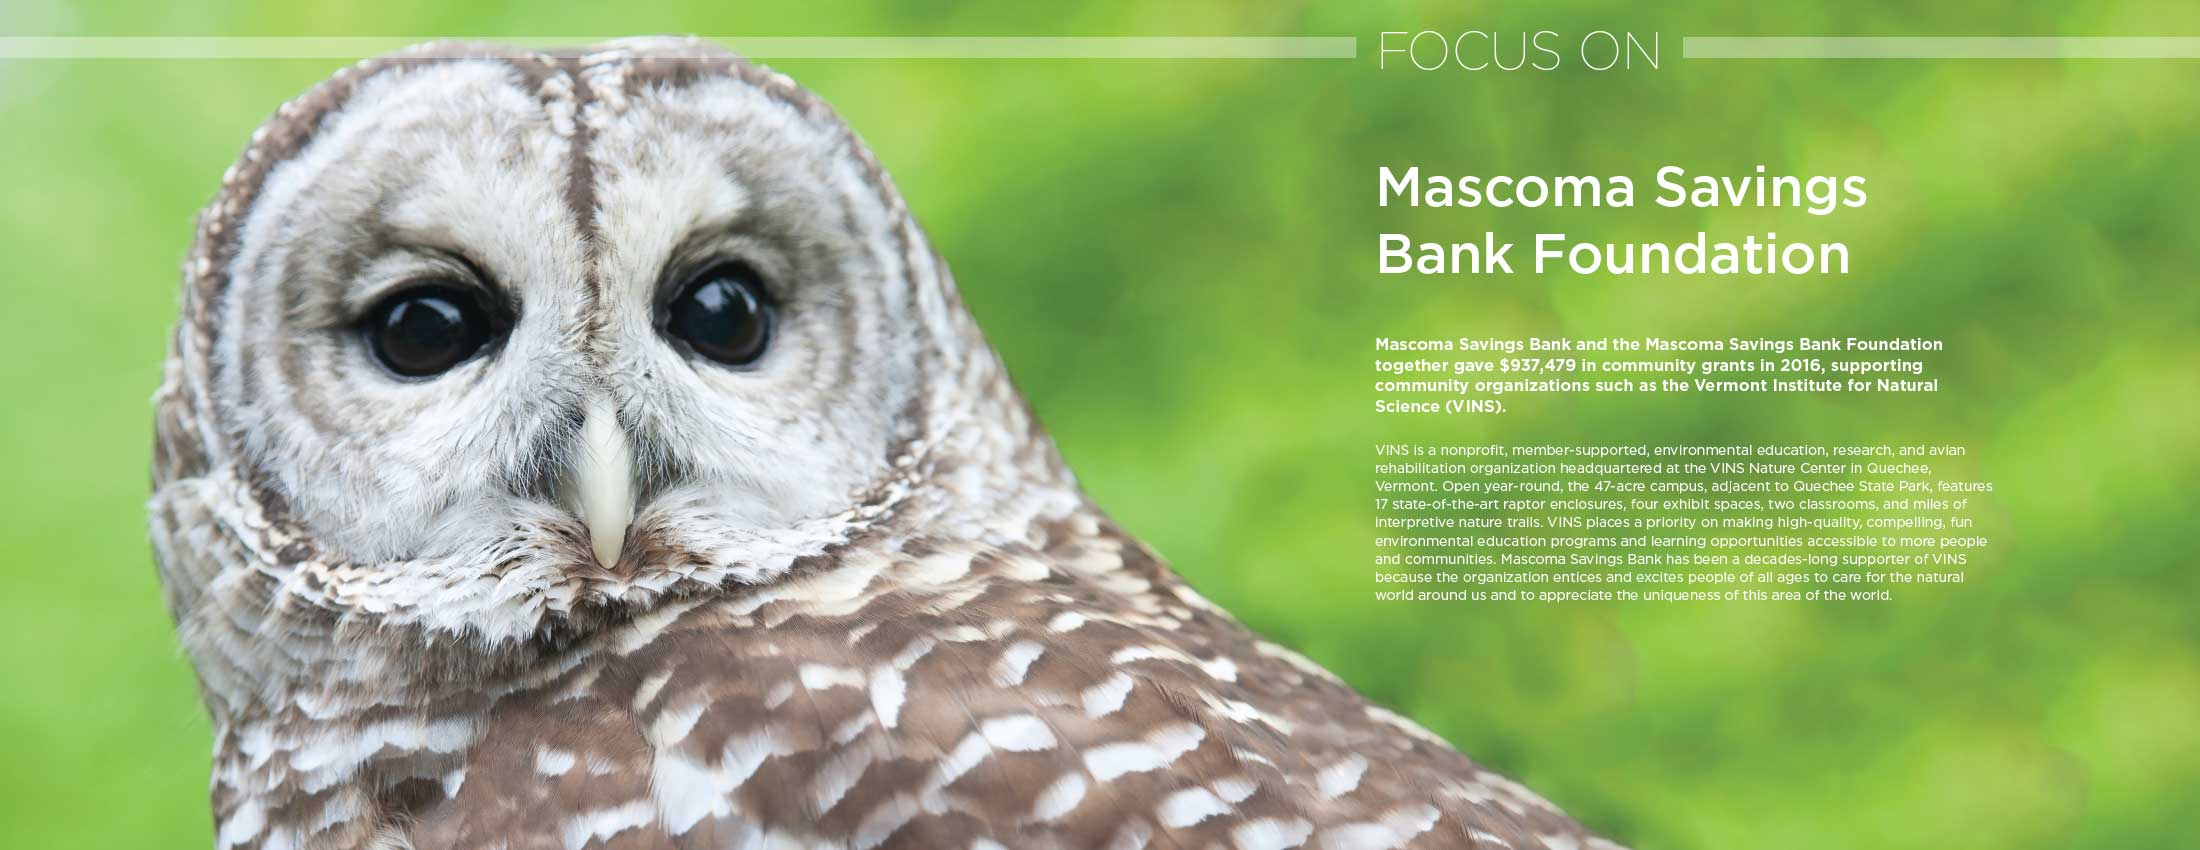 Bard owl looking at camera with copy on top describing the Mascoma Savings Bank Foundation